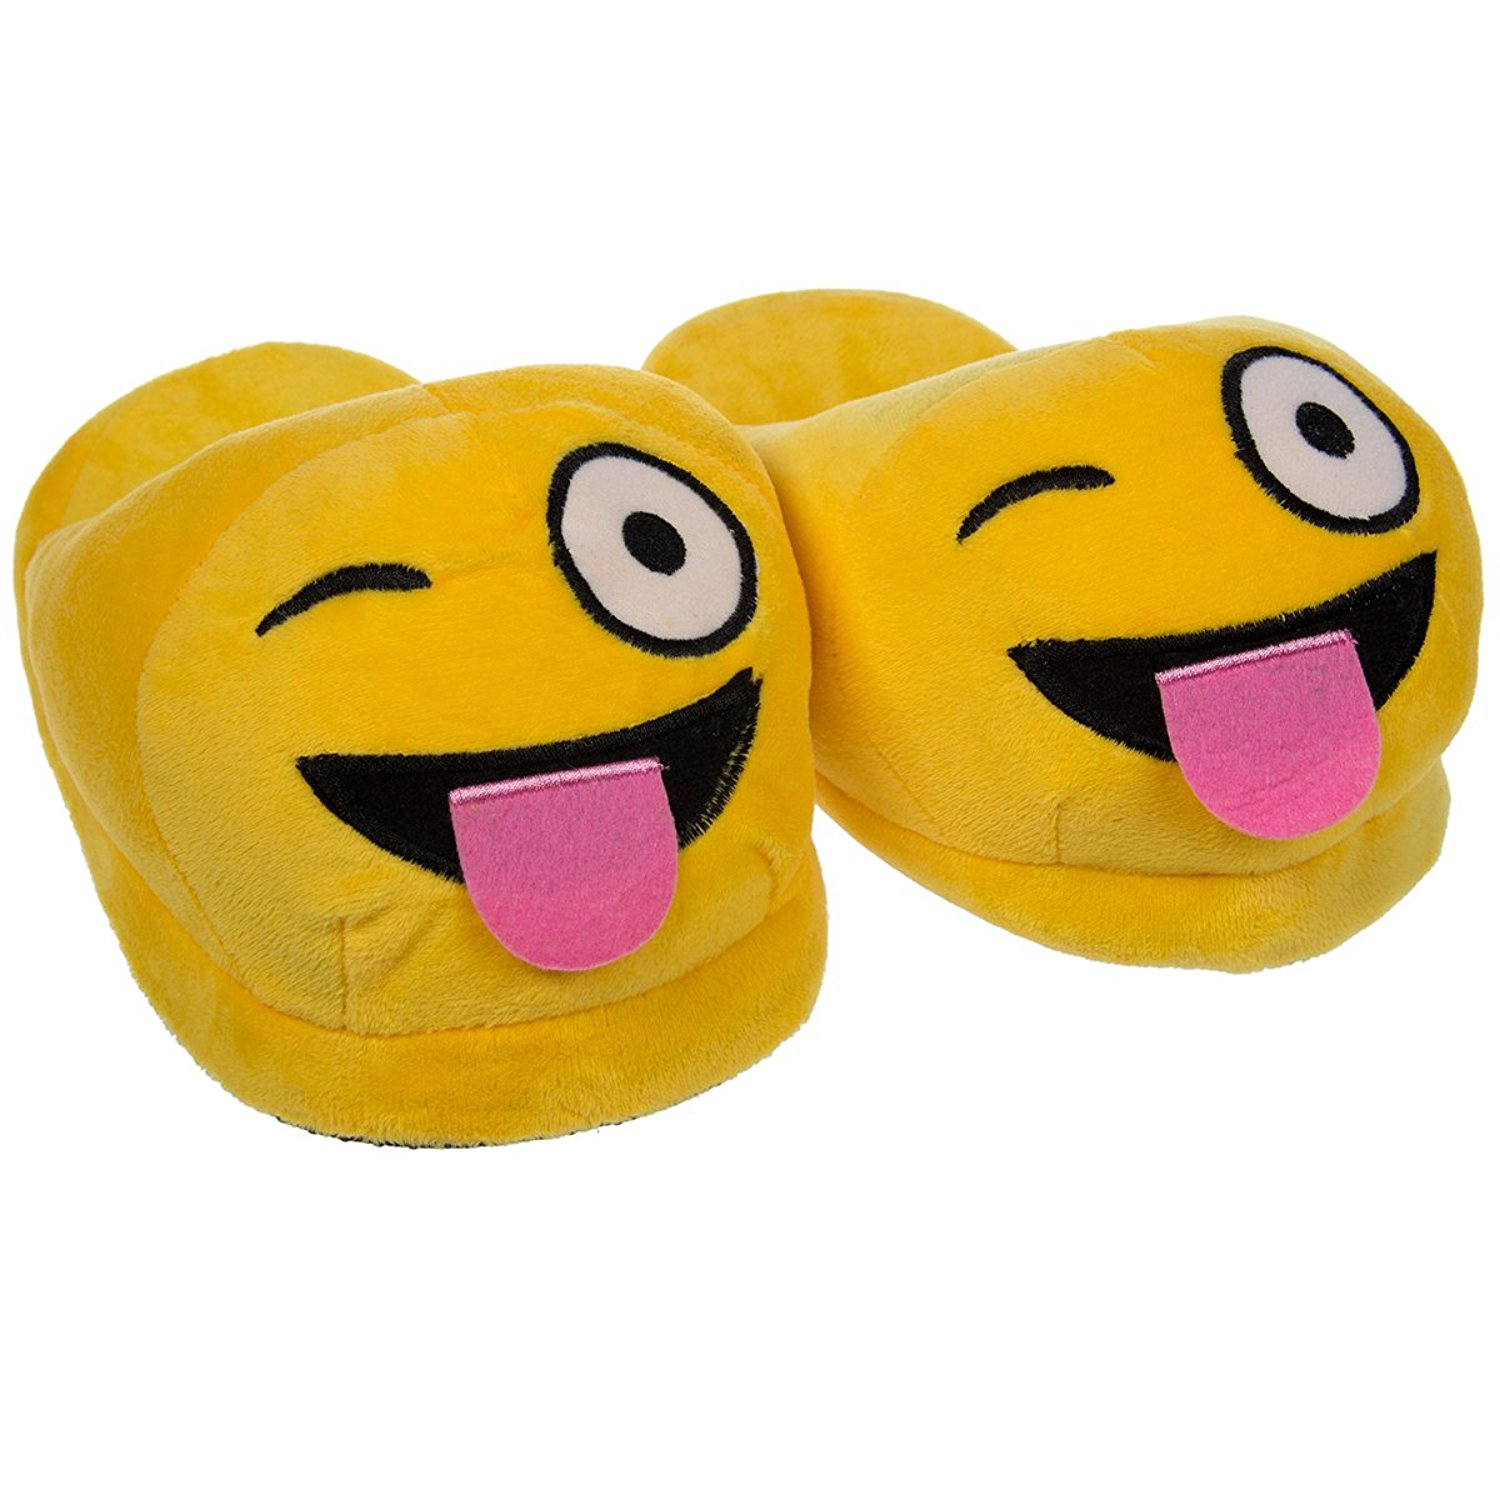 1500x1500 One Size Fits All Warm And Cozy Emoji Slippers